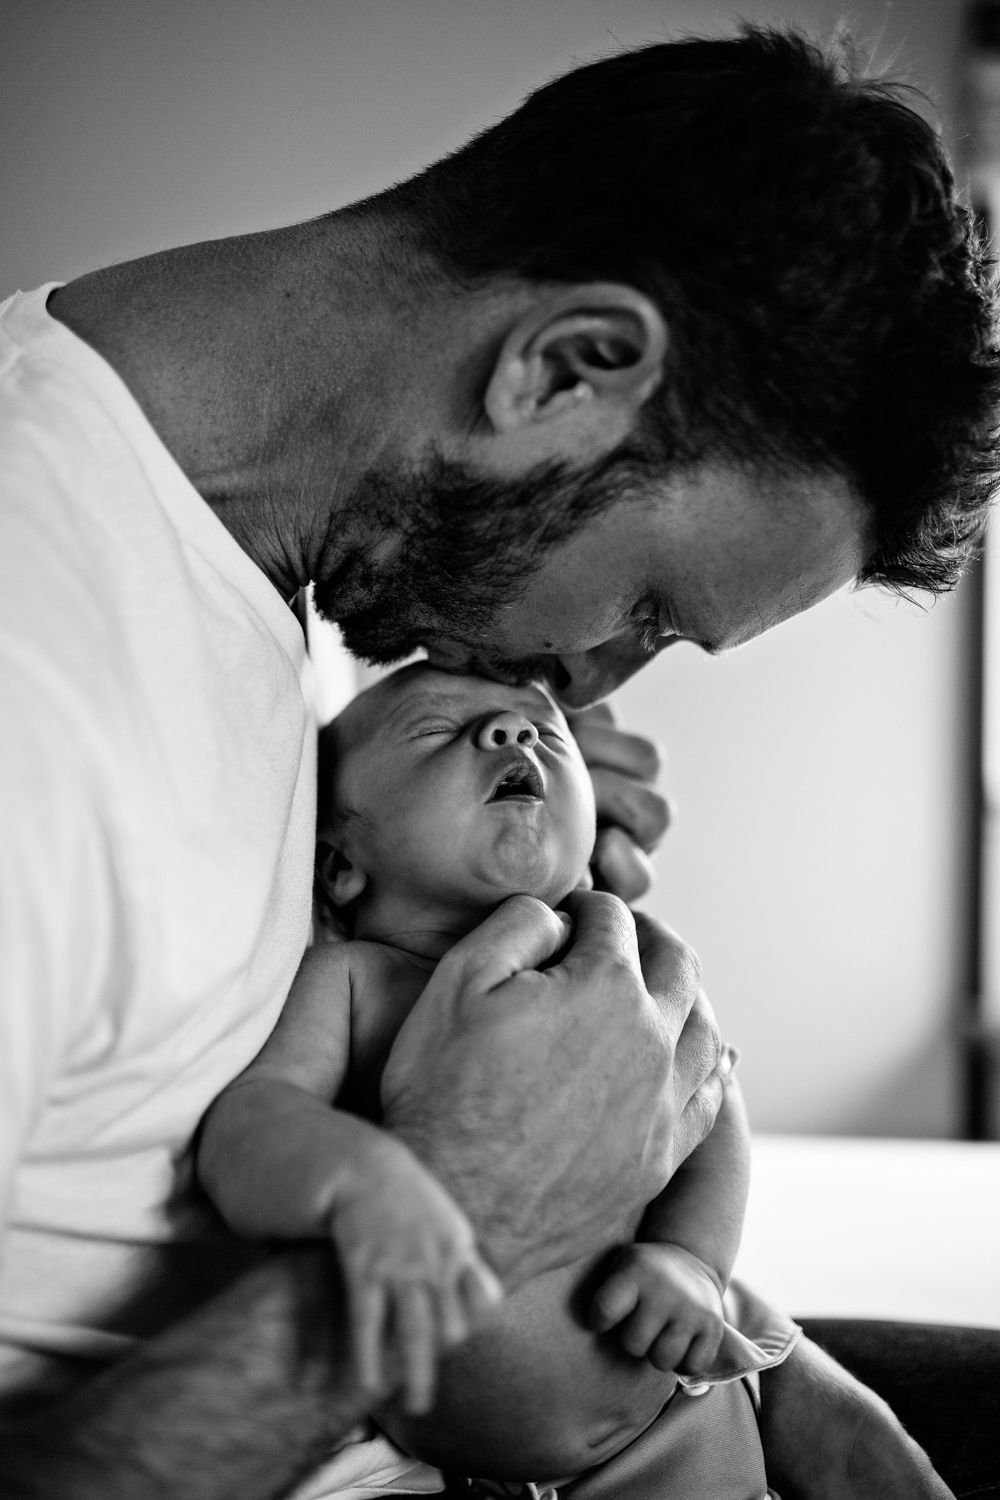 Beautiful image of father kissing newborn son during a home session with newborn baby.